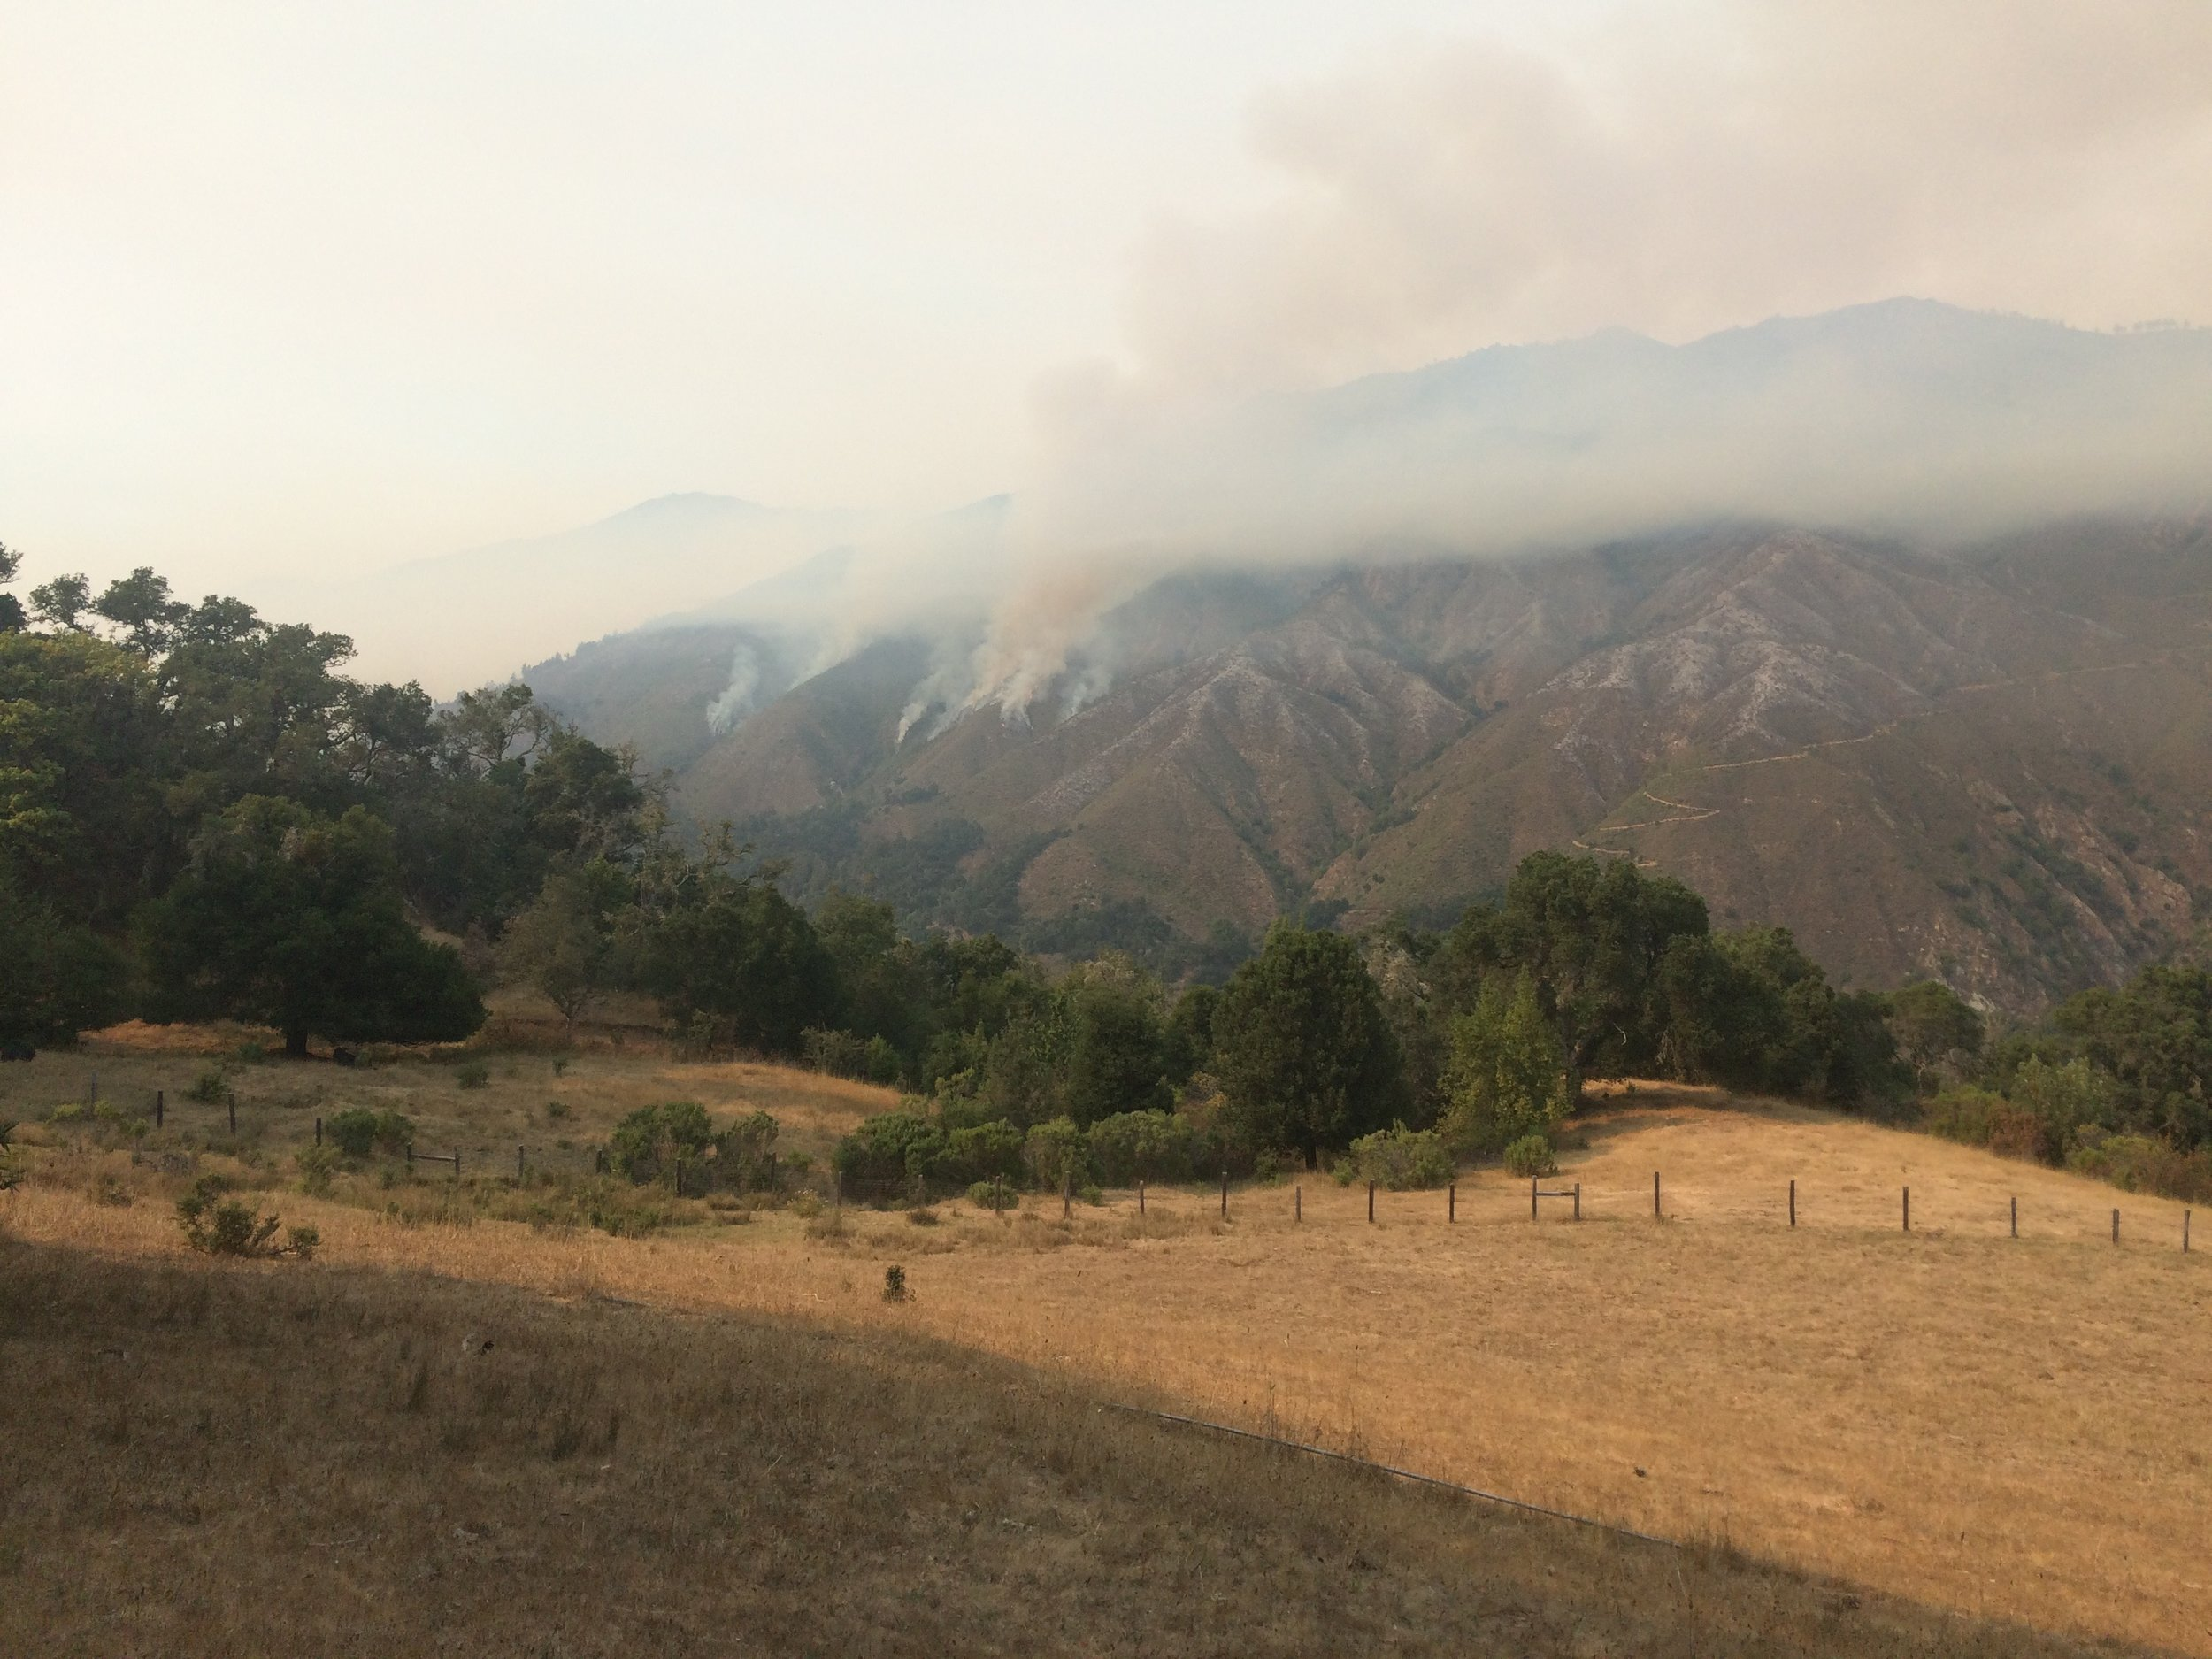 the view from our Big Sur house during the Soberanes Fire of 2016